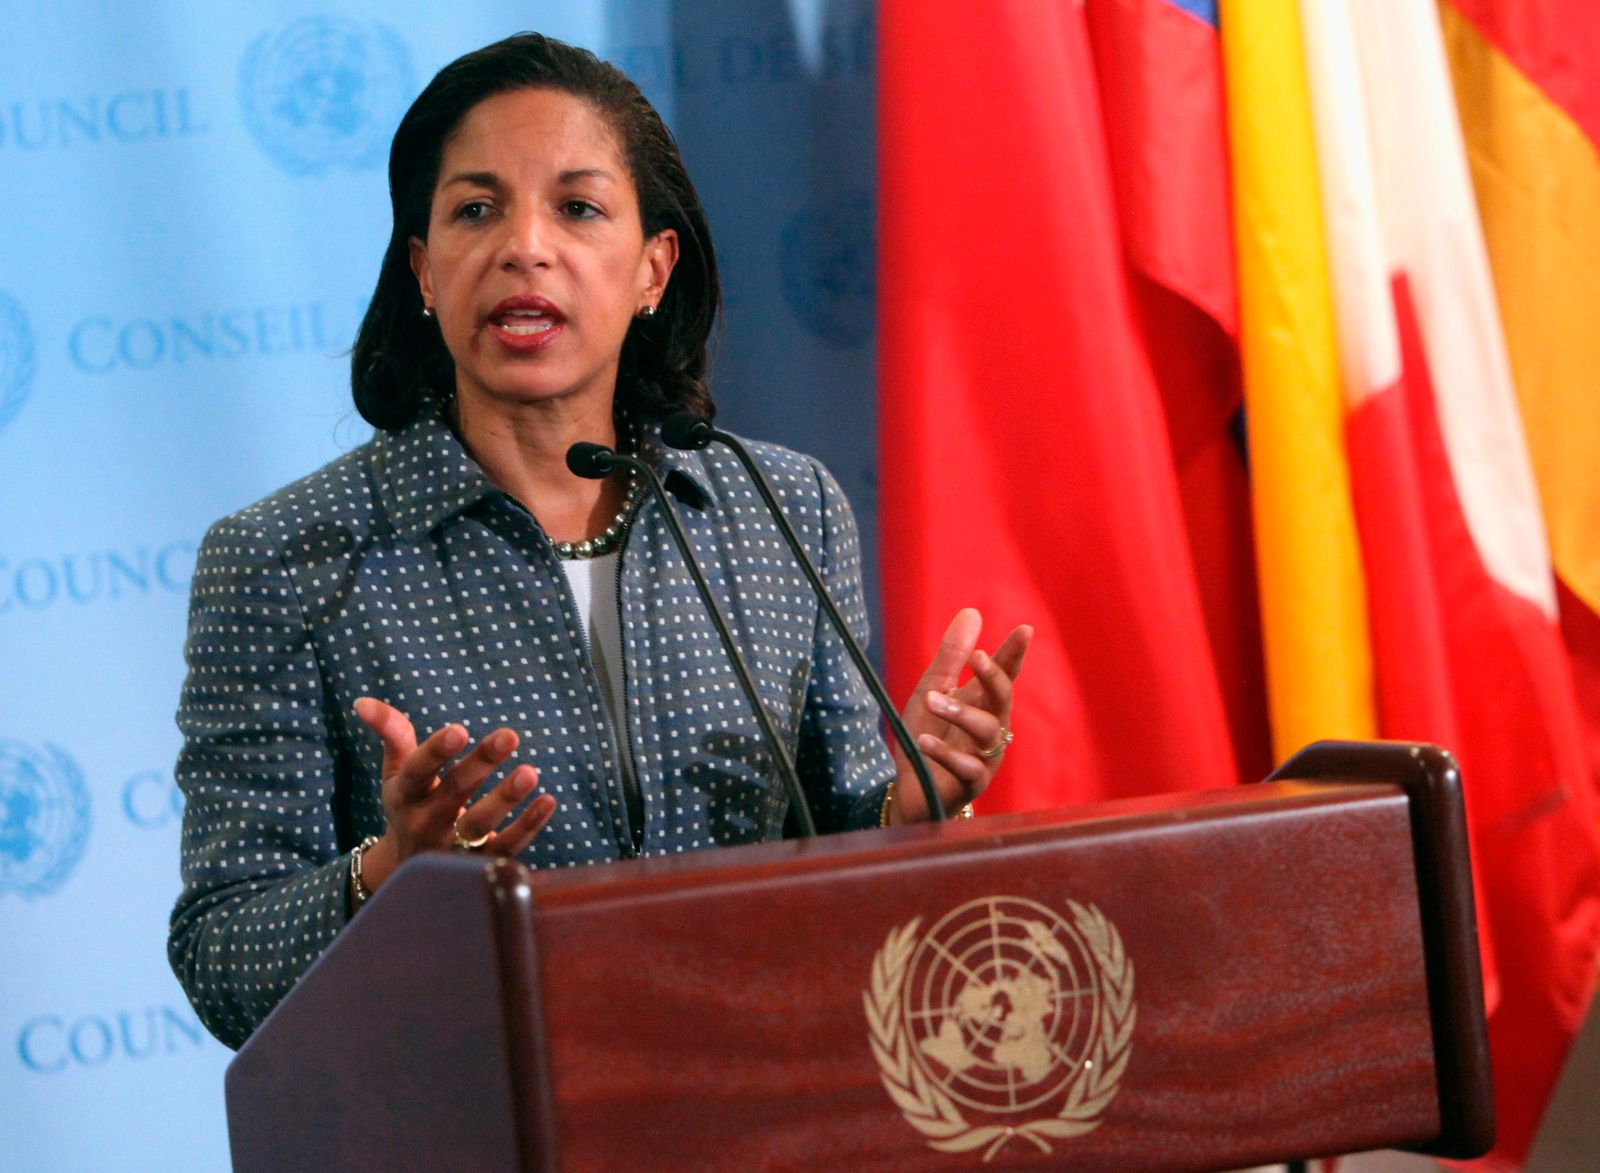 U.S. ambassador to the U.N. Susan Rice speaks with the media after Security Council consultations at U.N. headquarters in New York